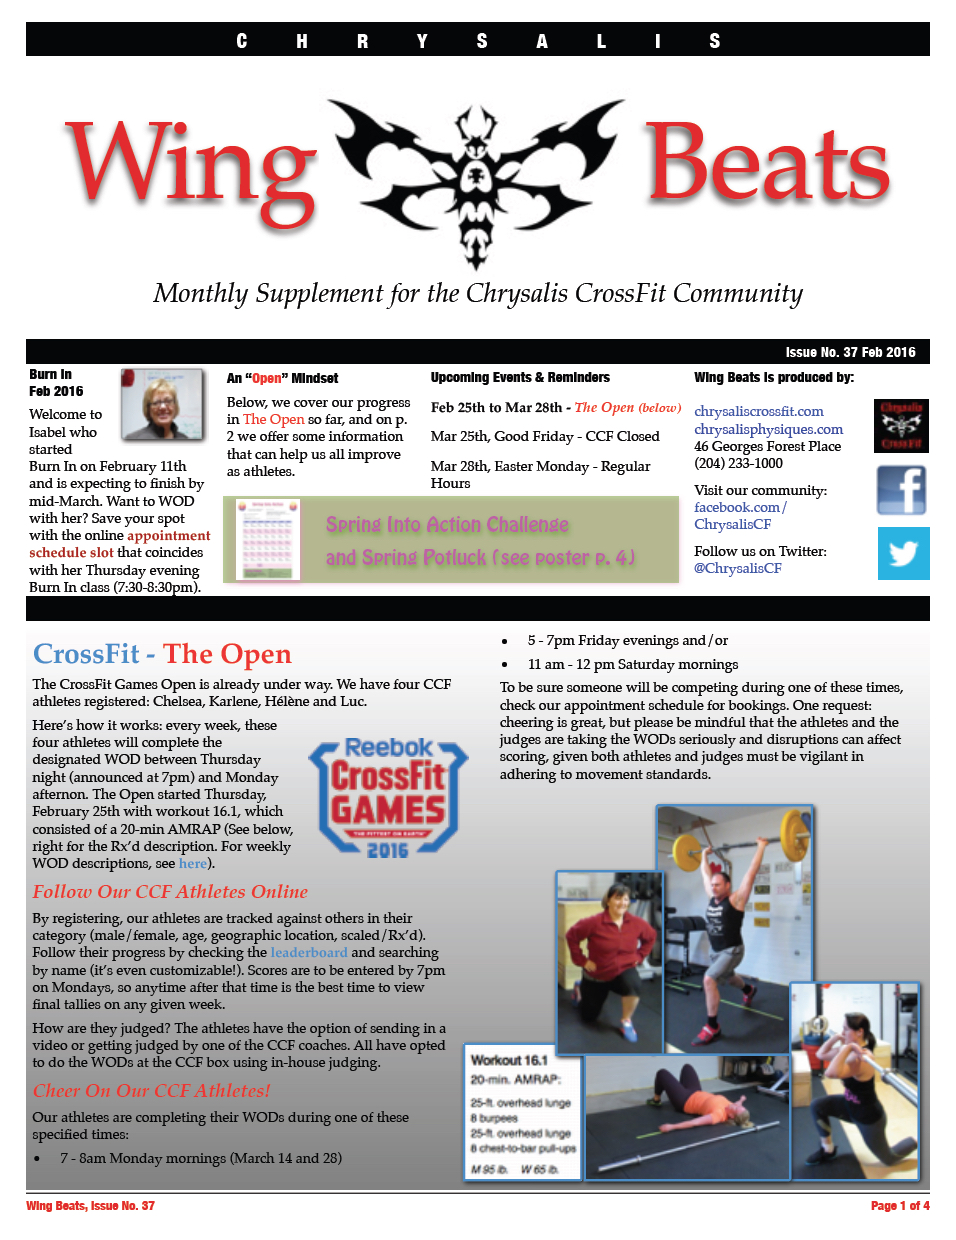 WingBeats Issue #37 - Feb 2016